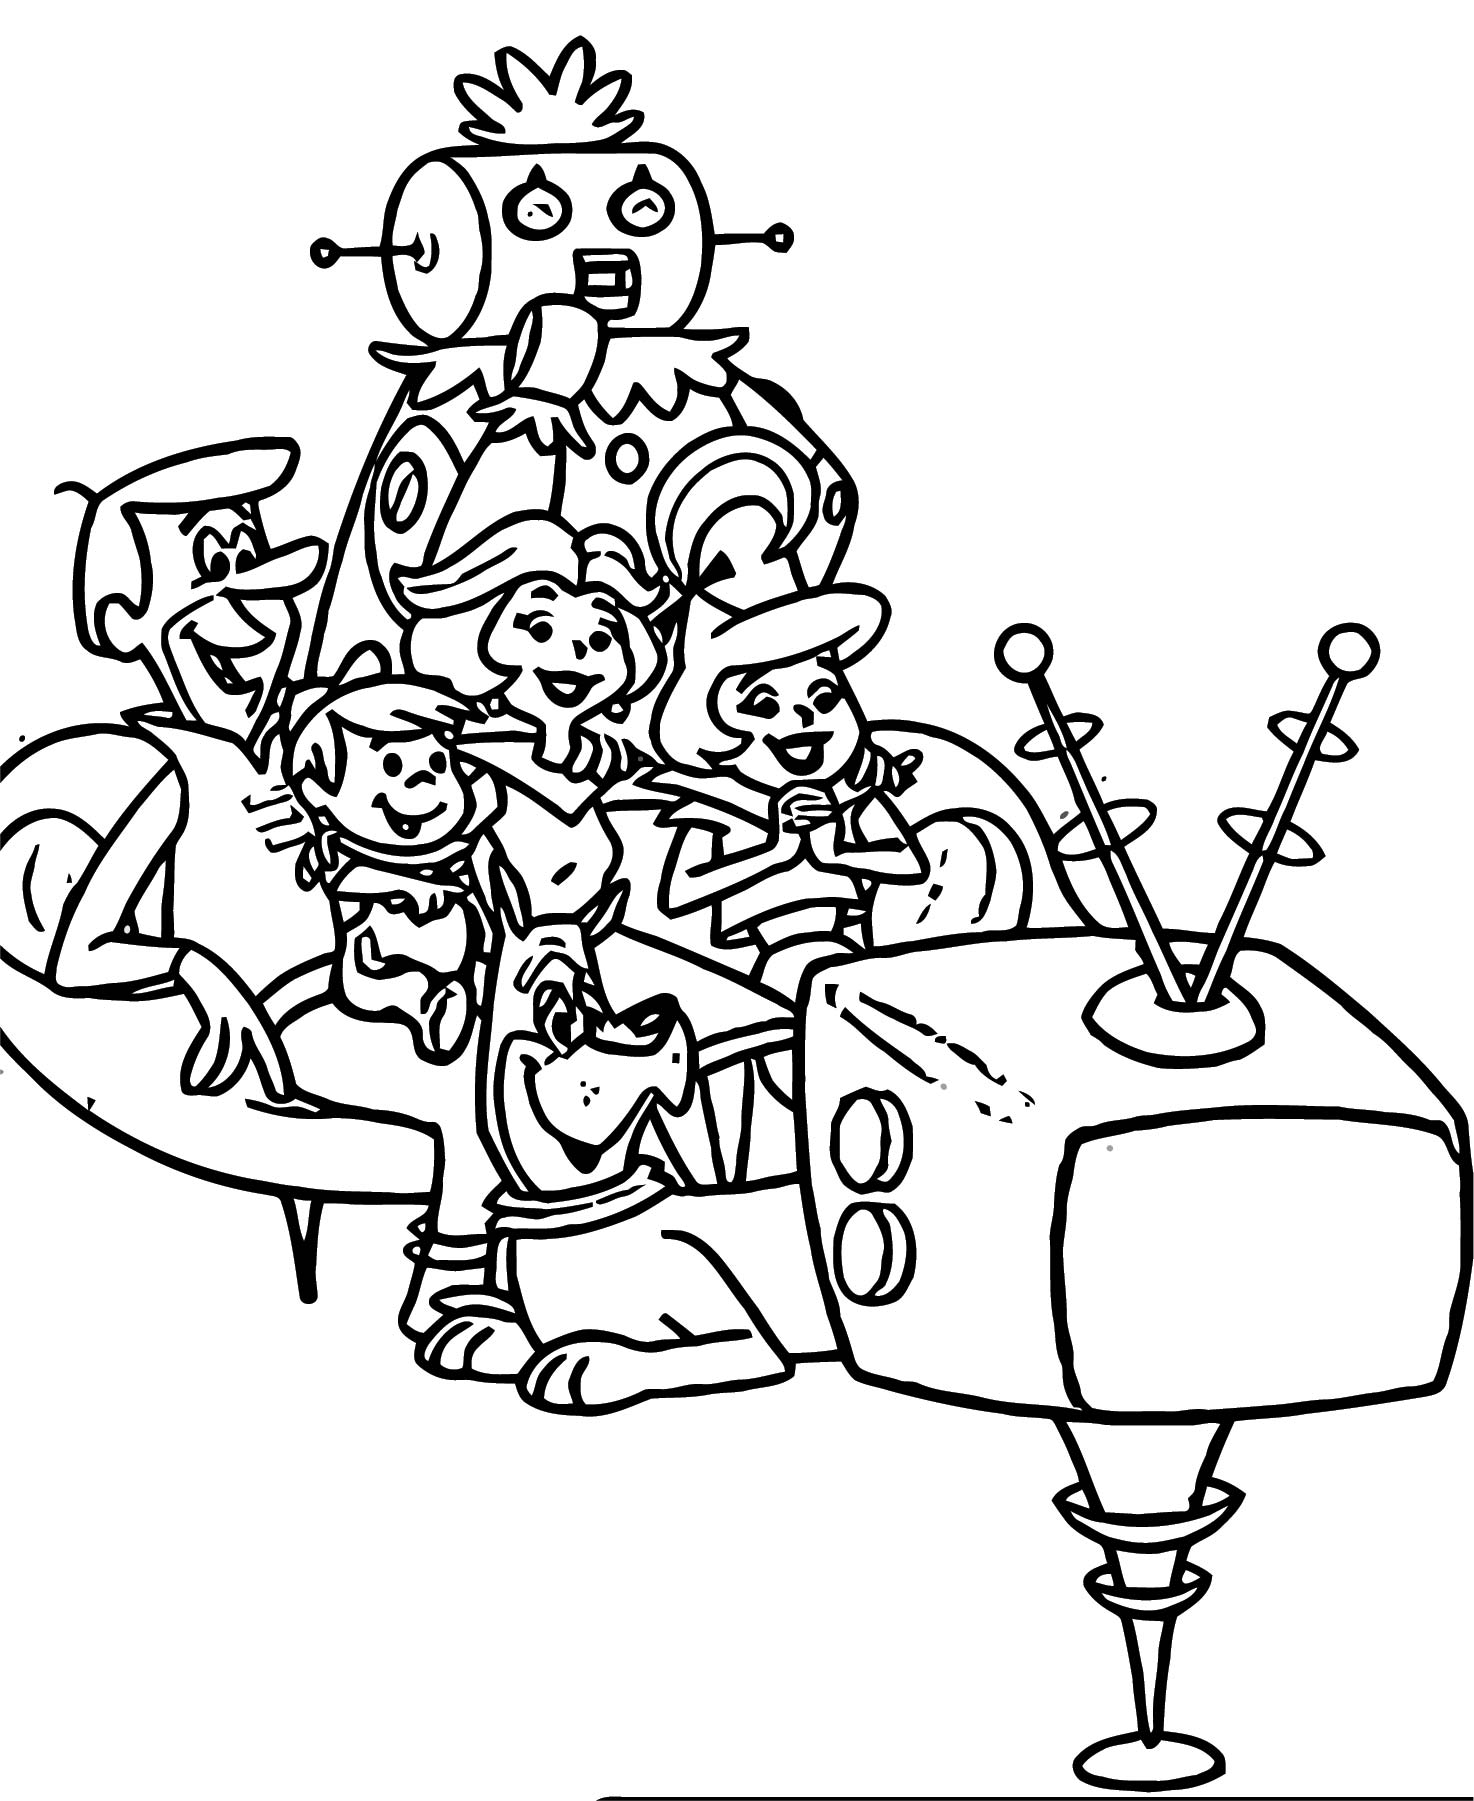 Jetsons Coloring Page 057